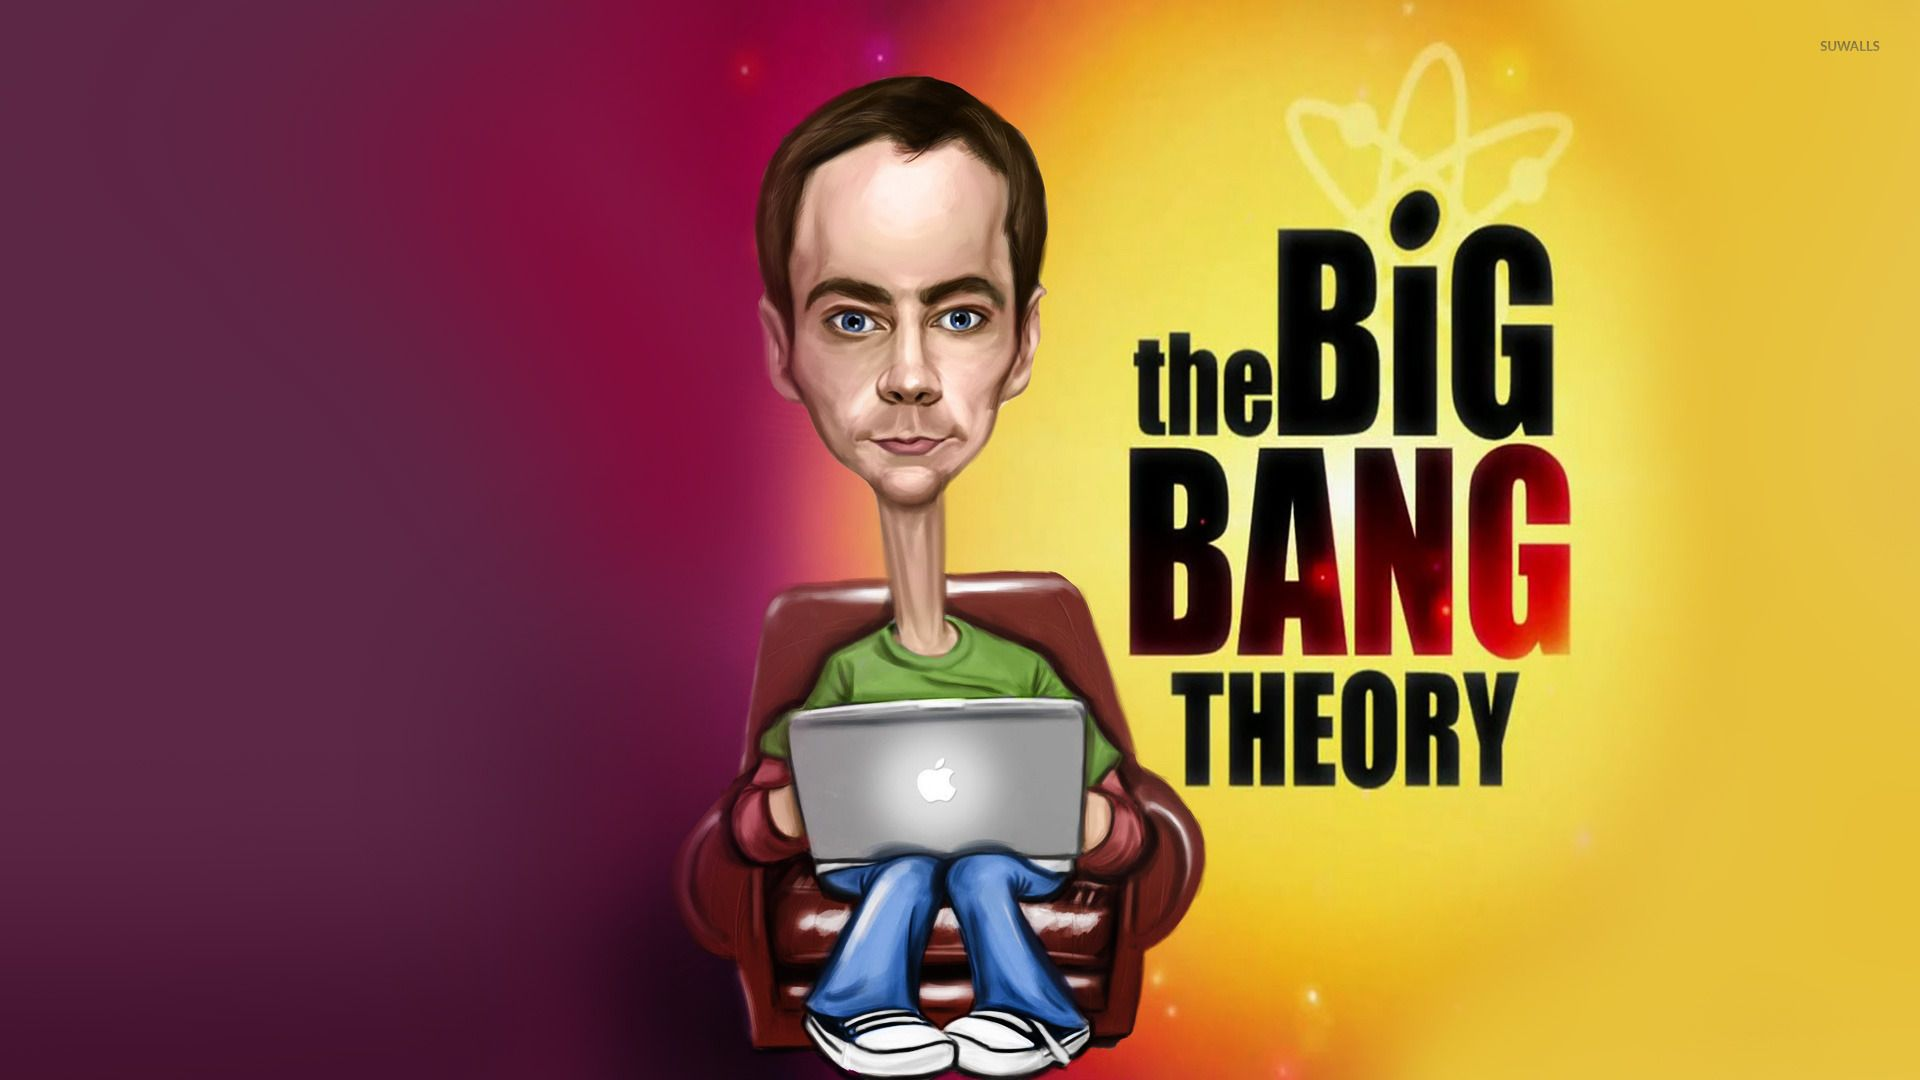 big bang theory wallpapers group with items | desktop wallpaper